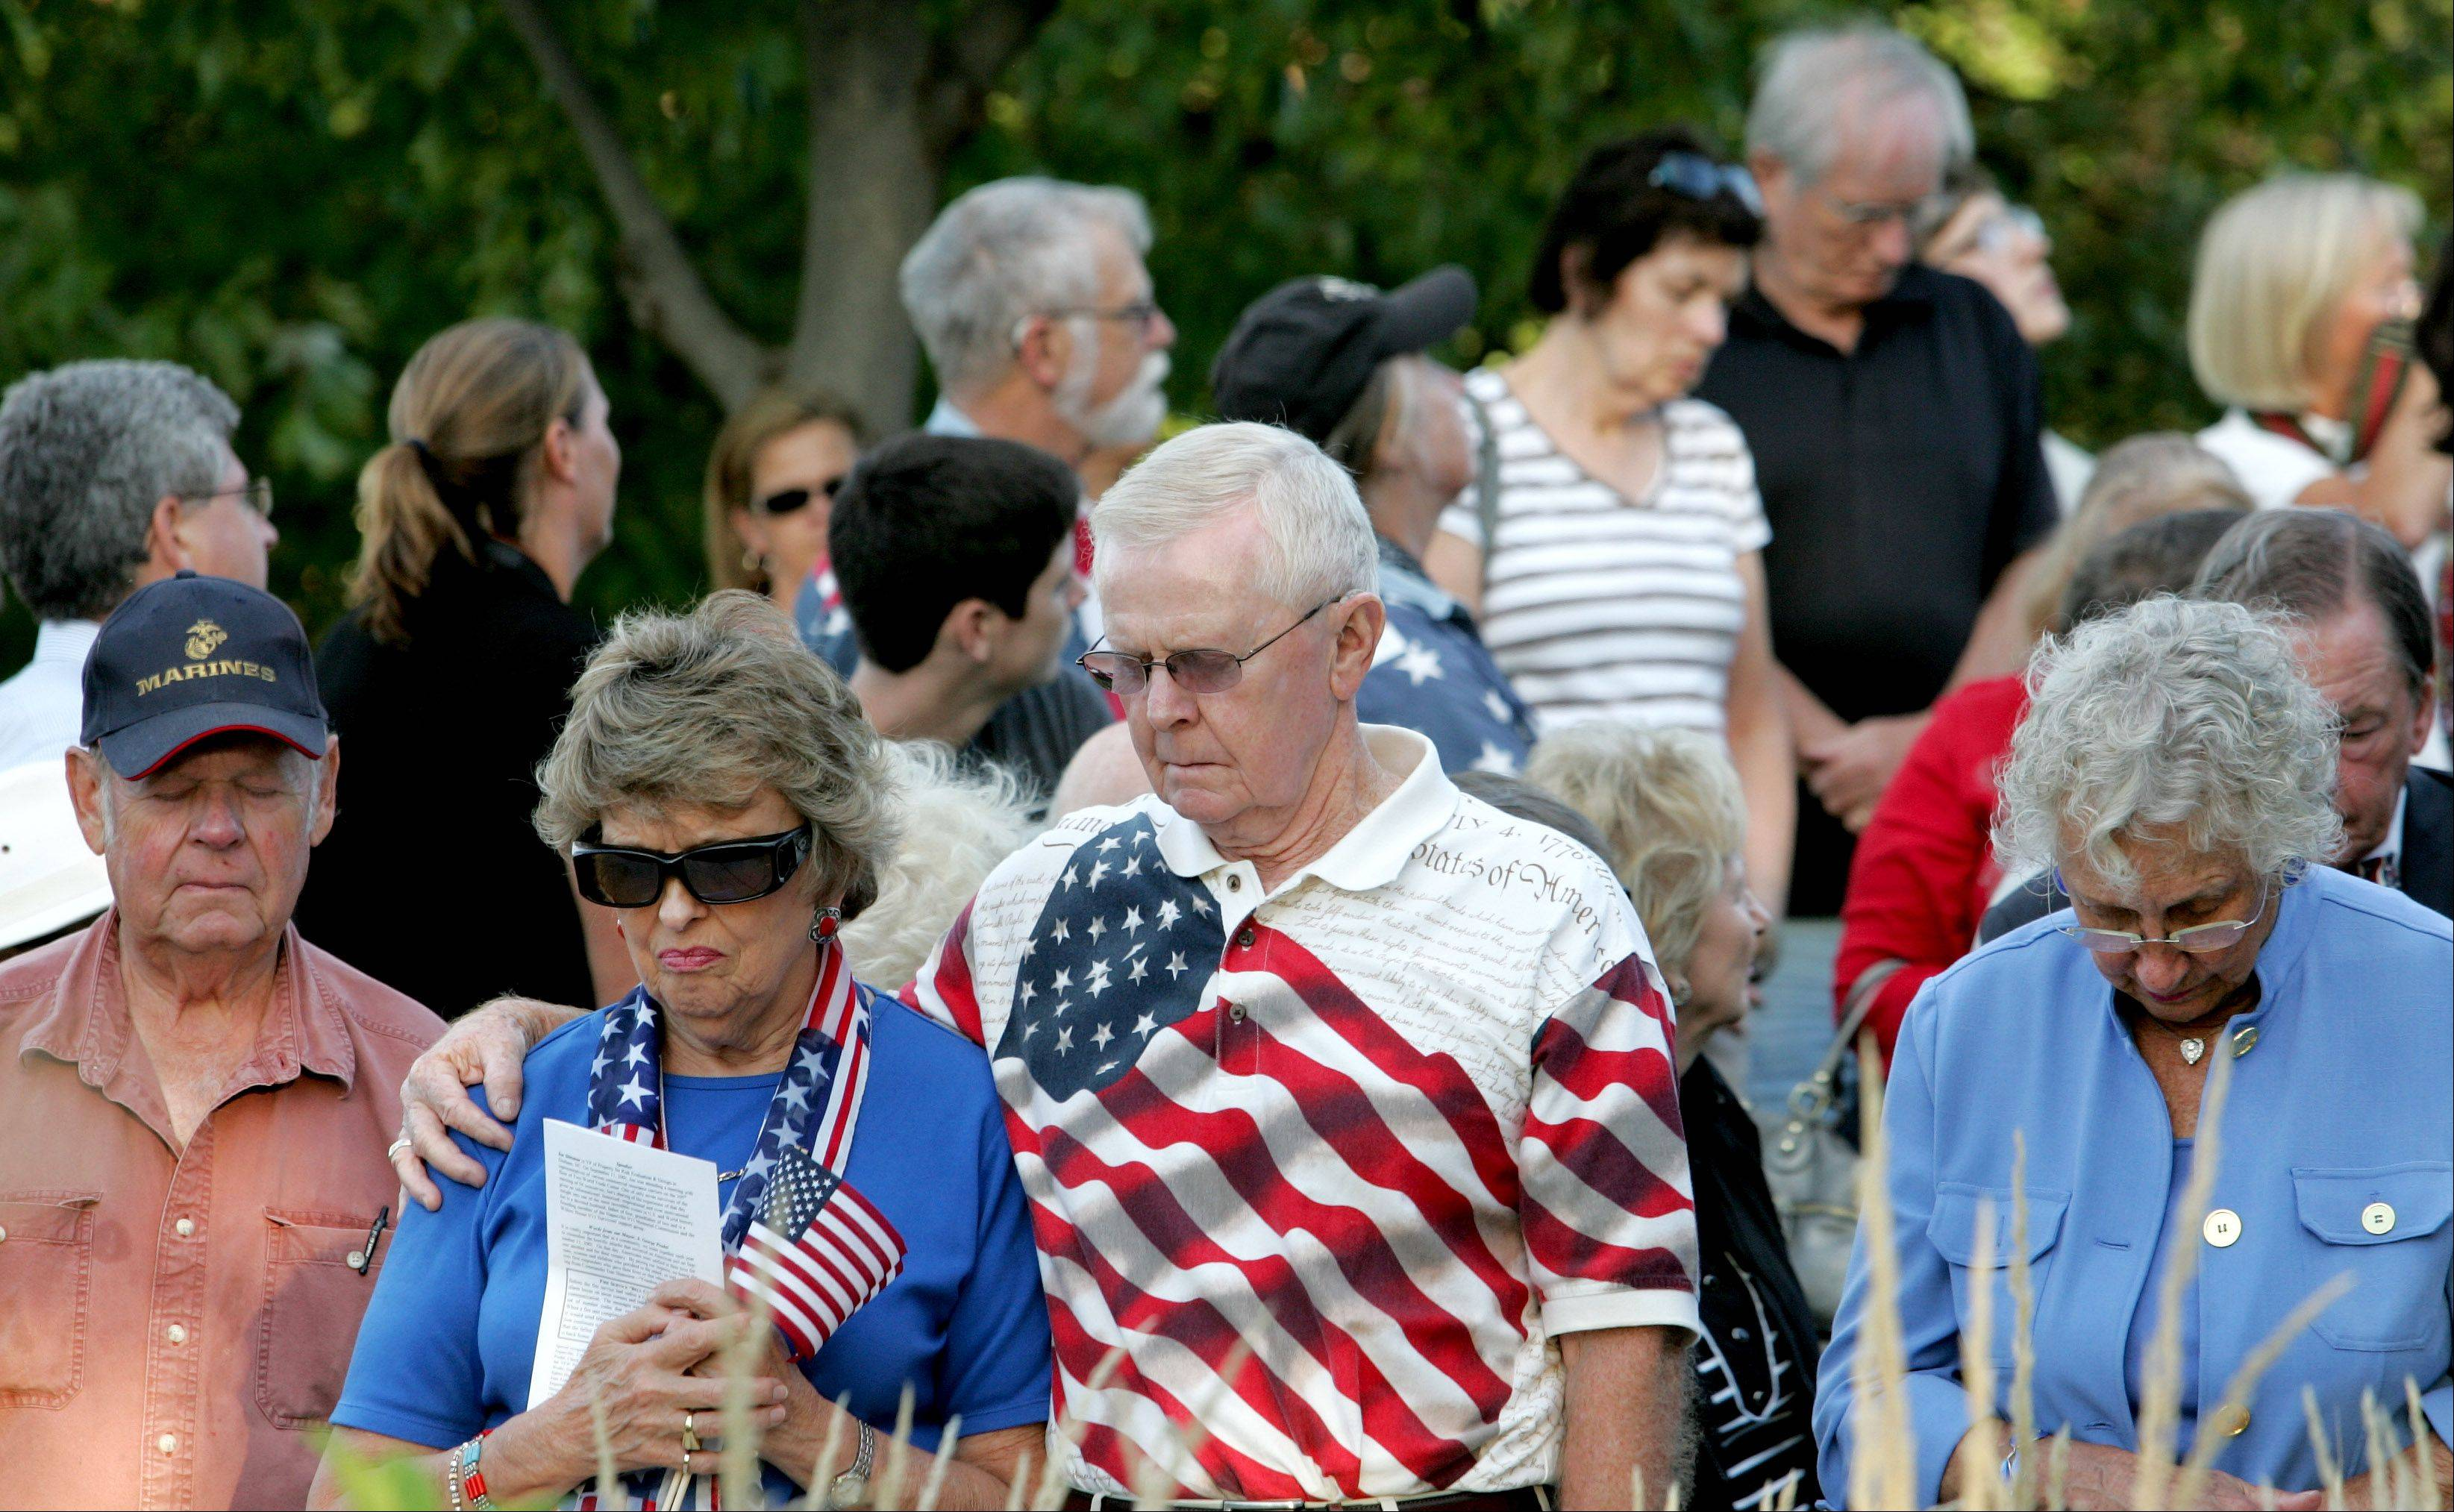 A moment of silence is observed during the annual September 11 remembrance at the Cmdr. Dan Shanower Memorial in Naperville on Tuesday.